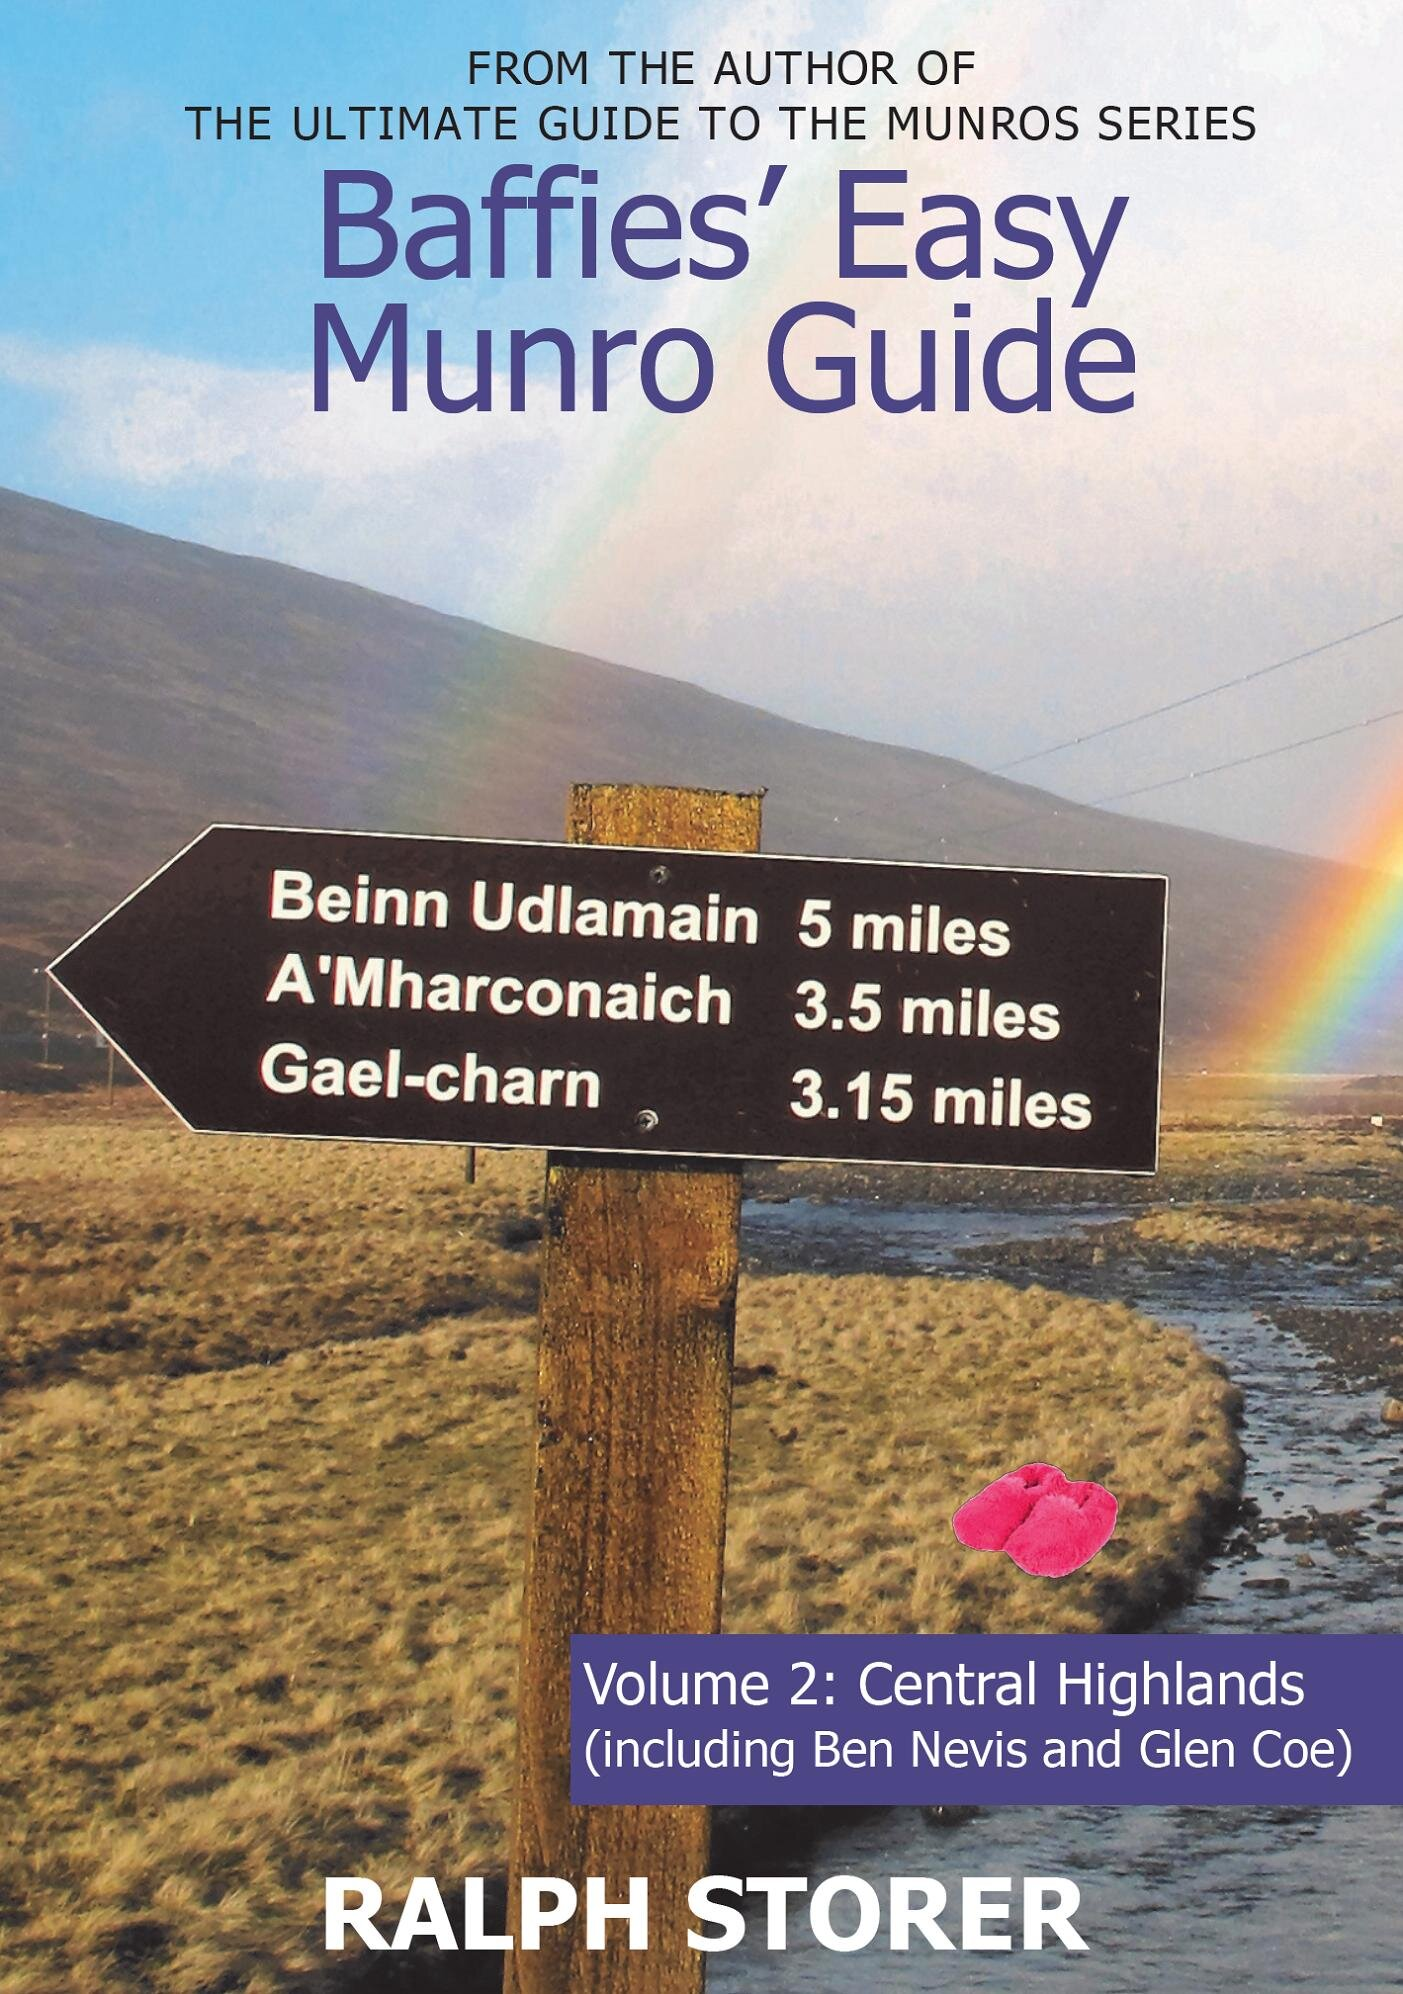 Baffies' Easy Munro Guide Volume 2 Central Highlands Luath Press.jpg